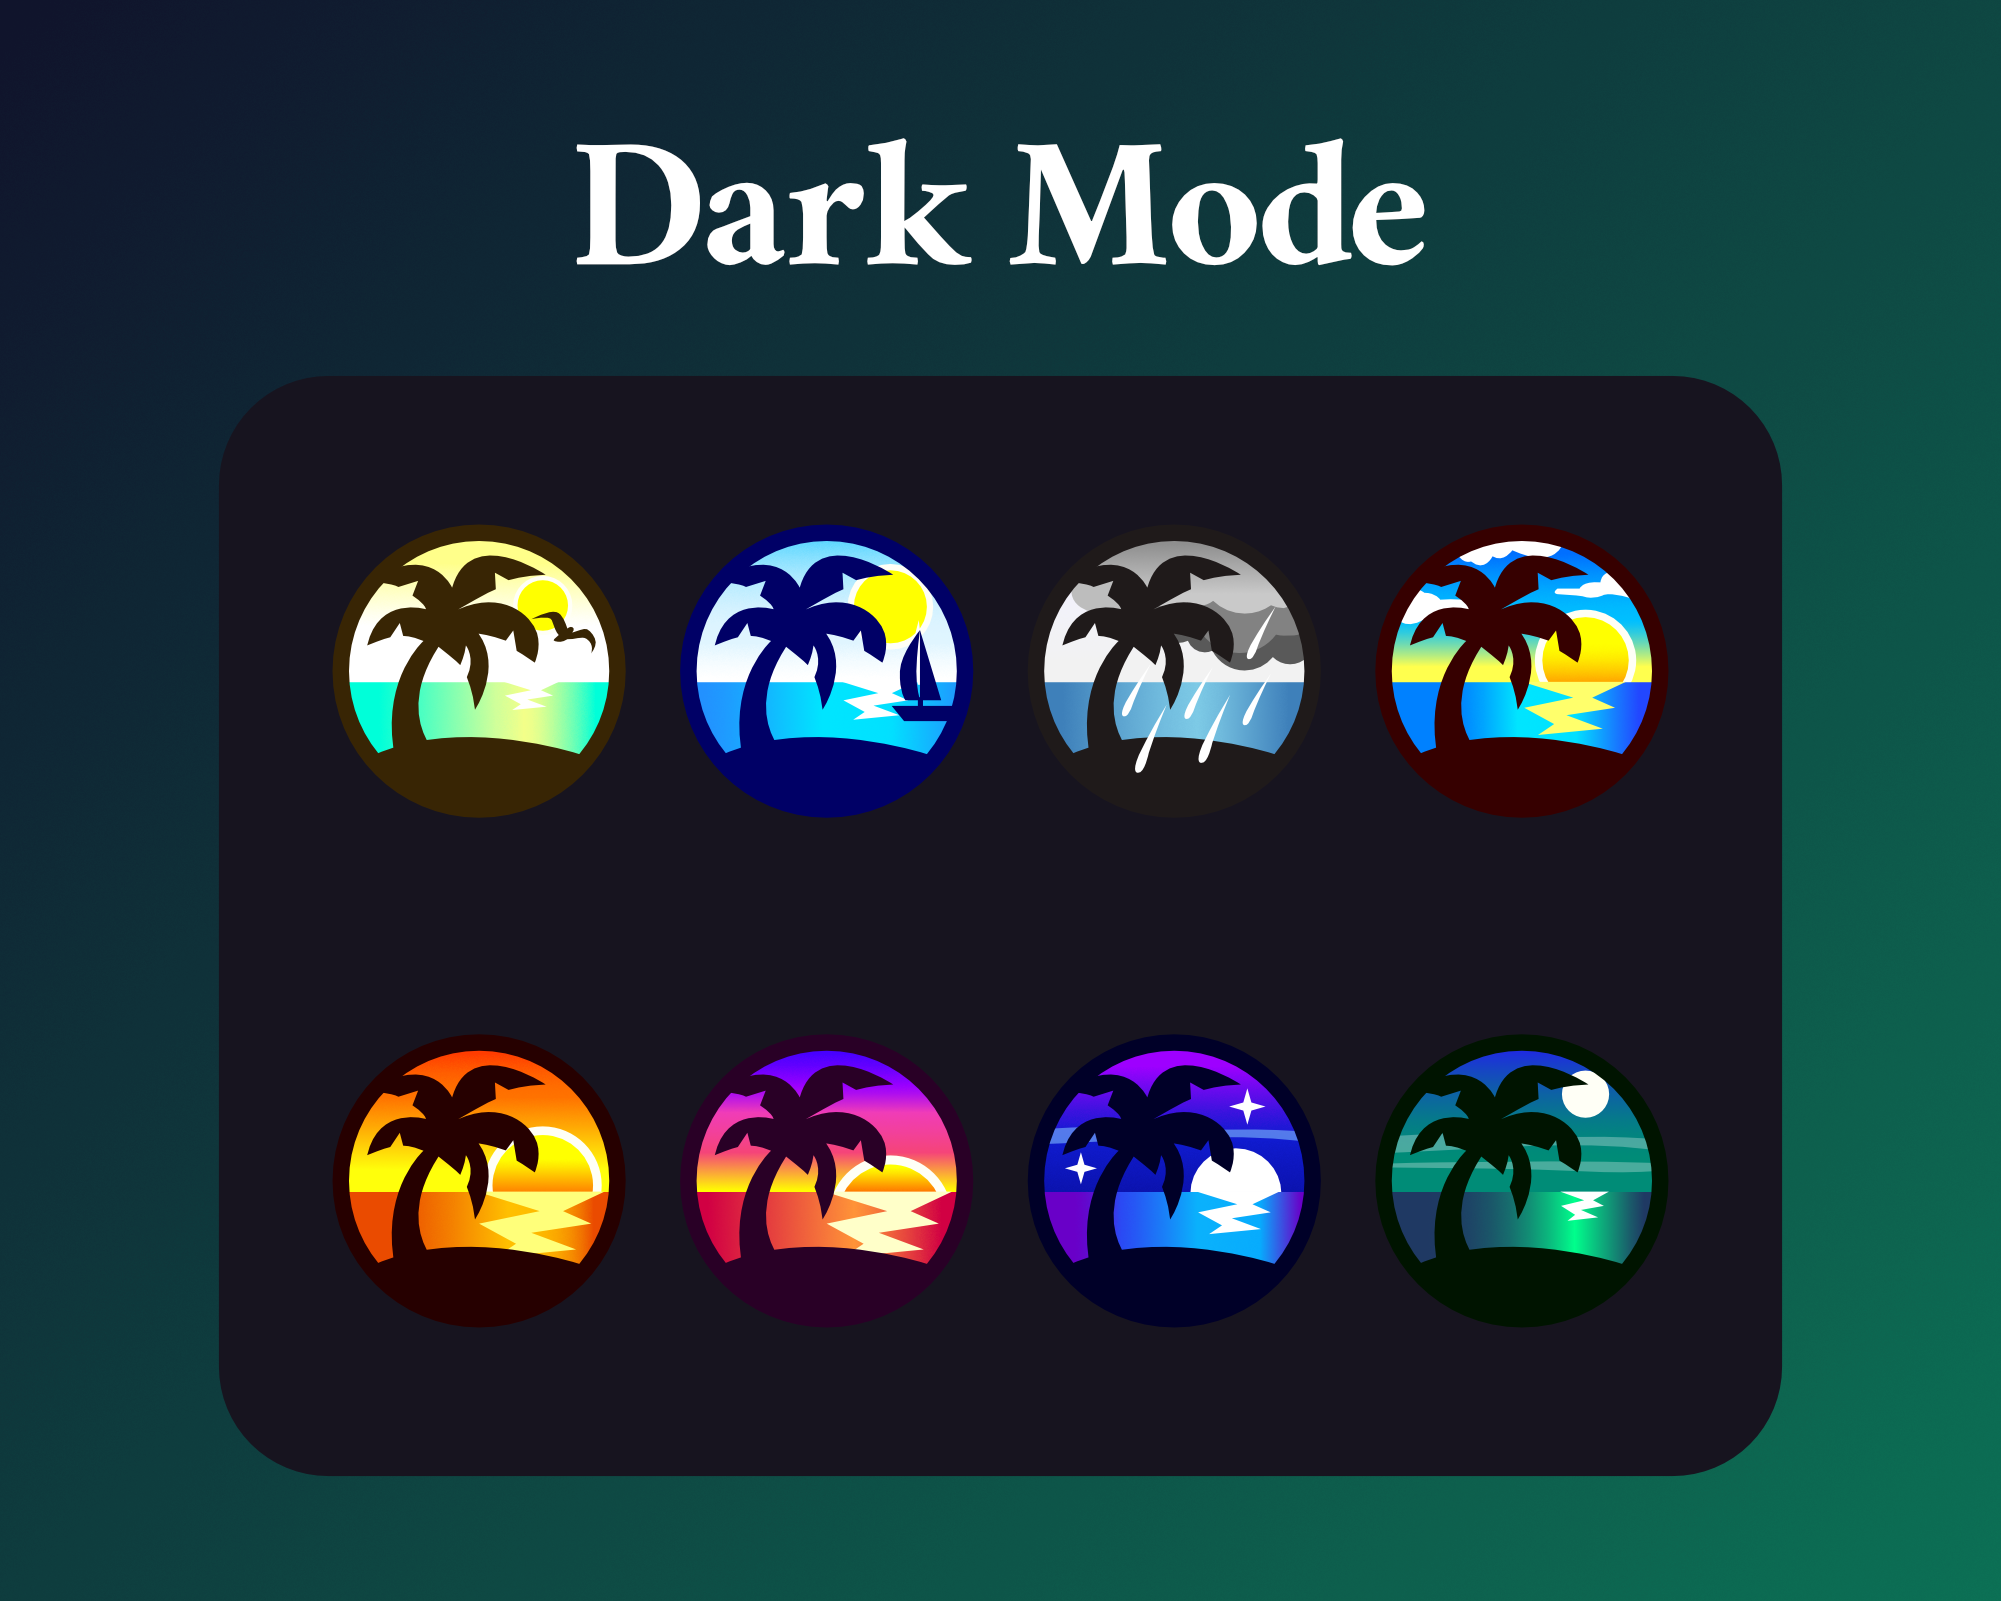 Palm tree subscriber badges for twitch chat in dark mode